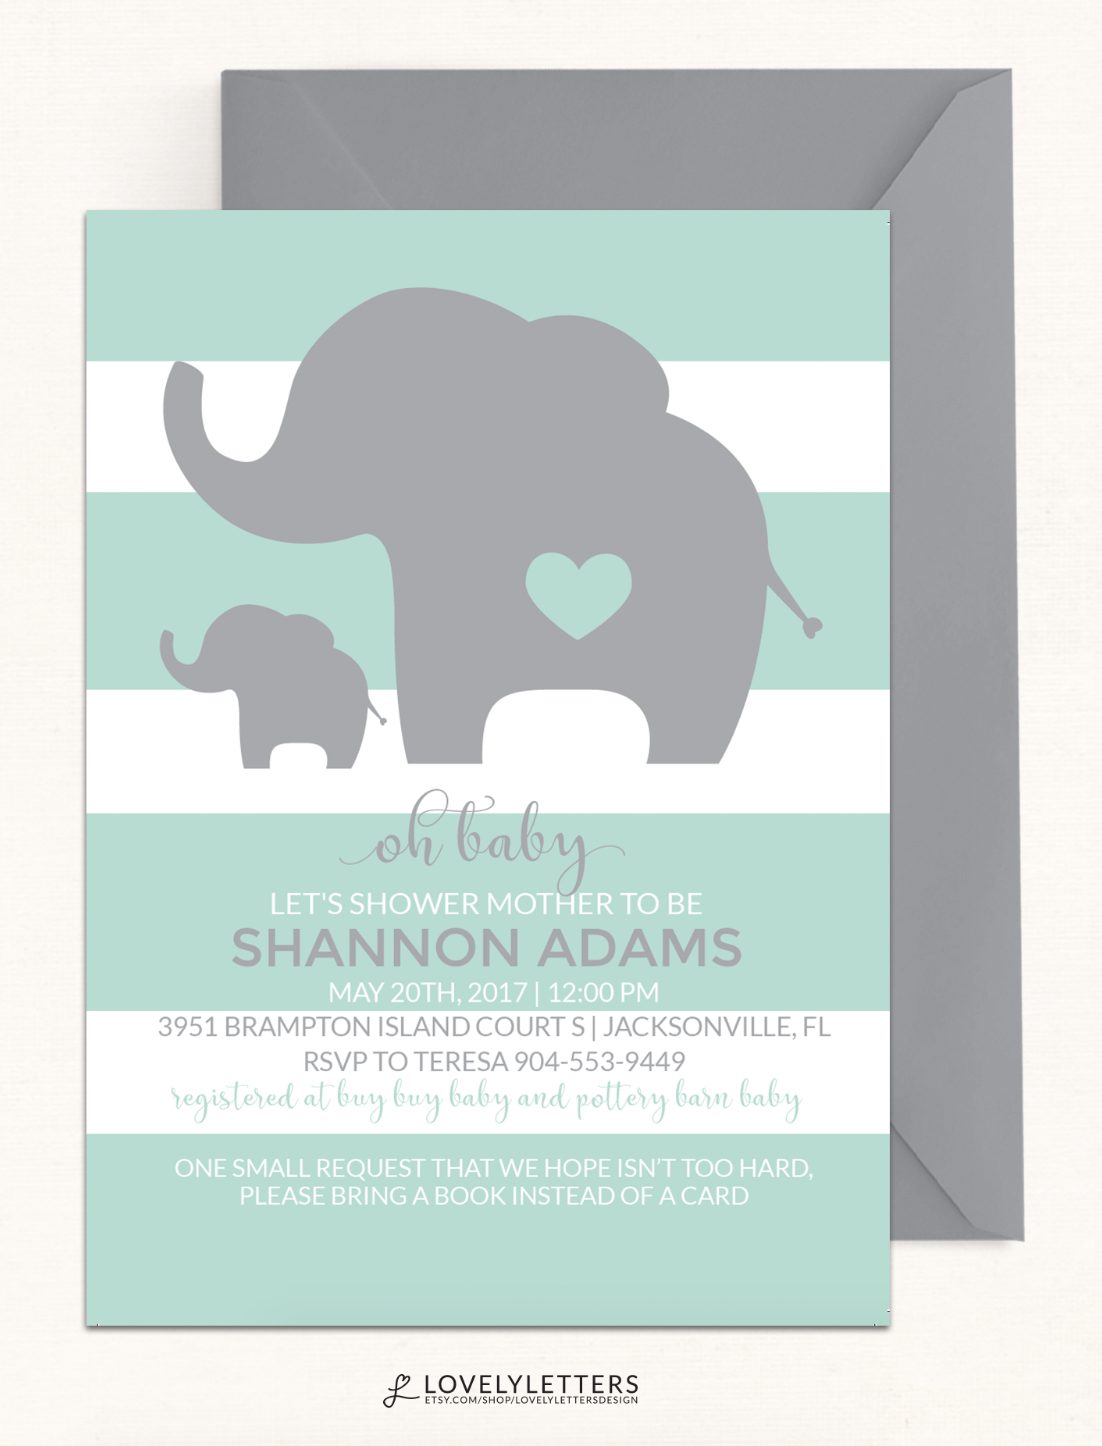 Elephant baby shower invitation little peanut shower invitation elephant baby shower invitation little peanut shower invitation elephant invitation elephant shower filmwisefo Images